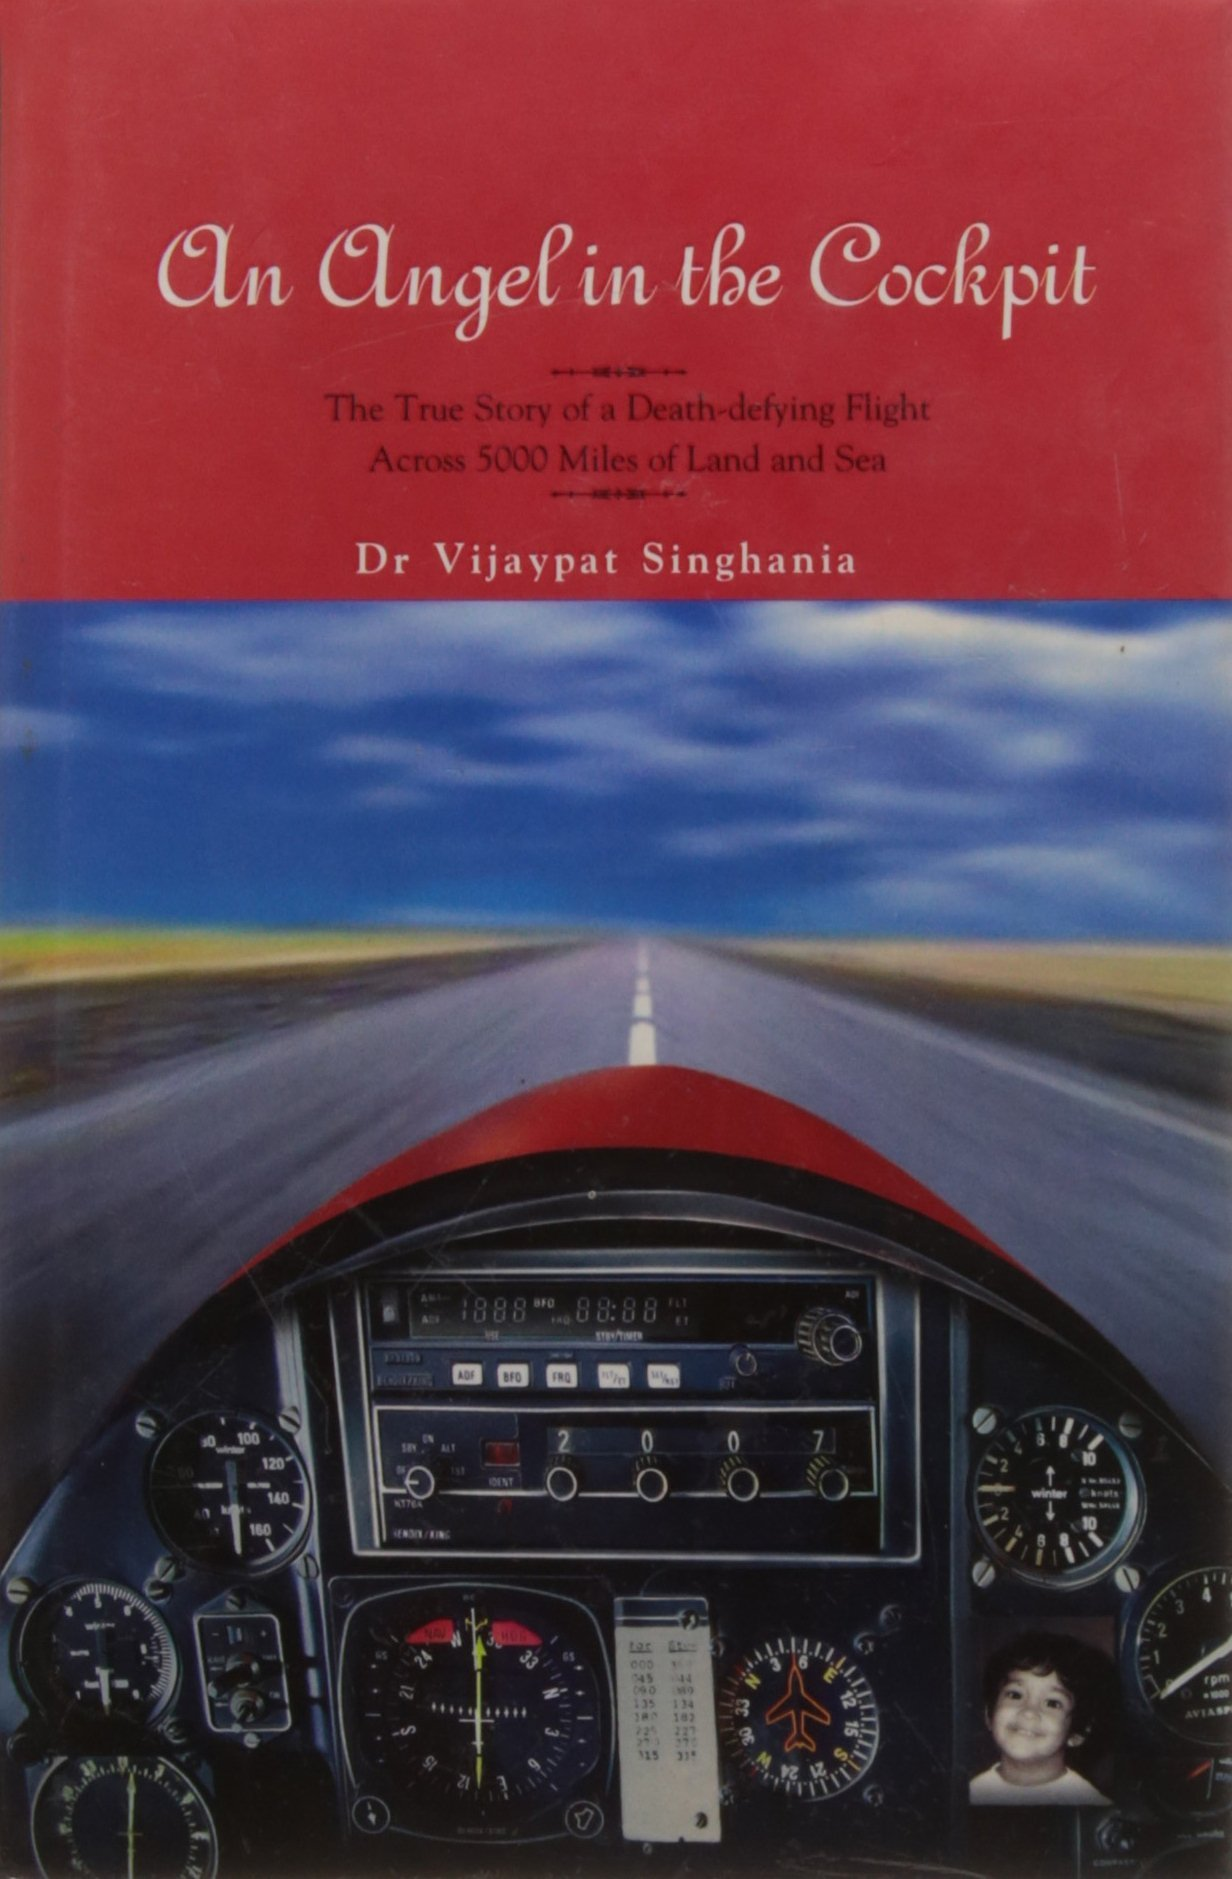 Buy An Angel in the Cockpit Book Online at Low Prices in India | An